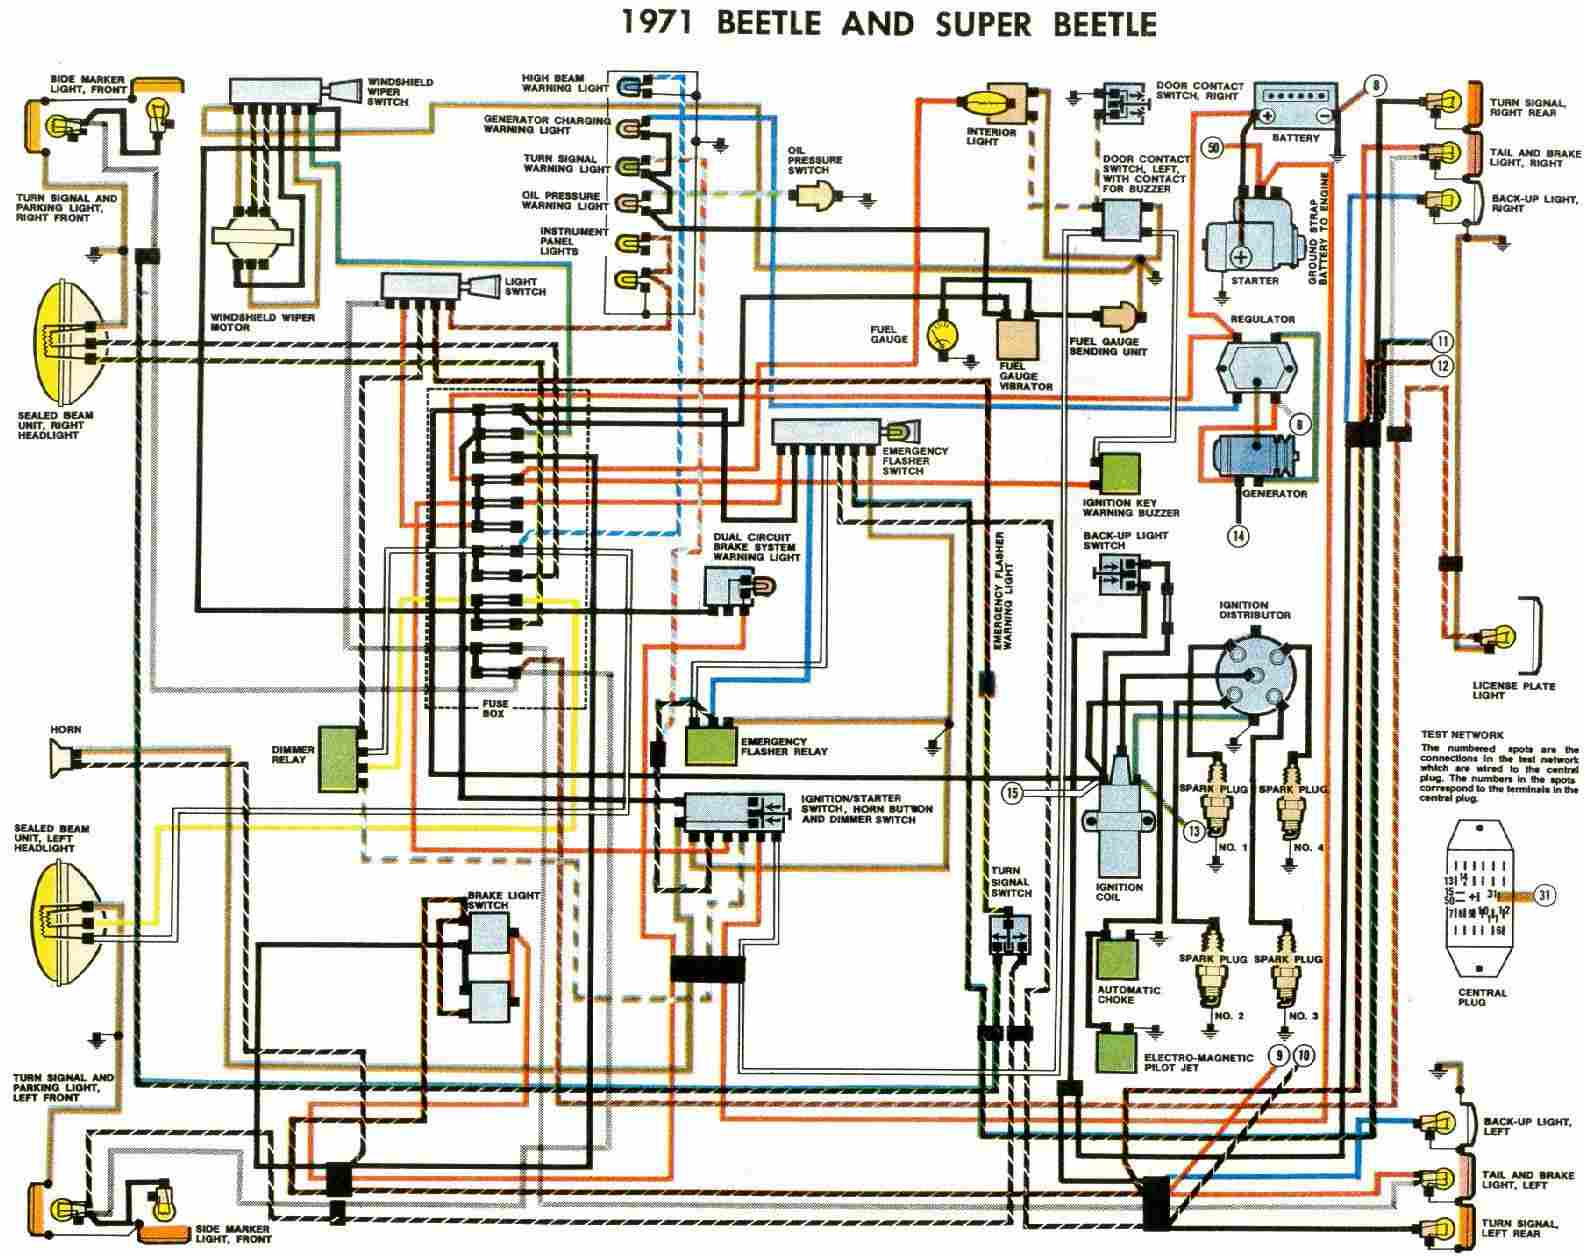 1971 dodge charger wiring diagram 1971 wiring diagrams online vw beetle and super beetle 1971 electrical wiring diagram dodge charger wiring diagram